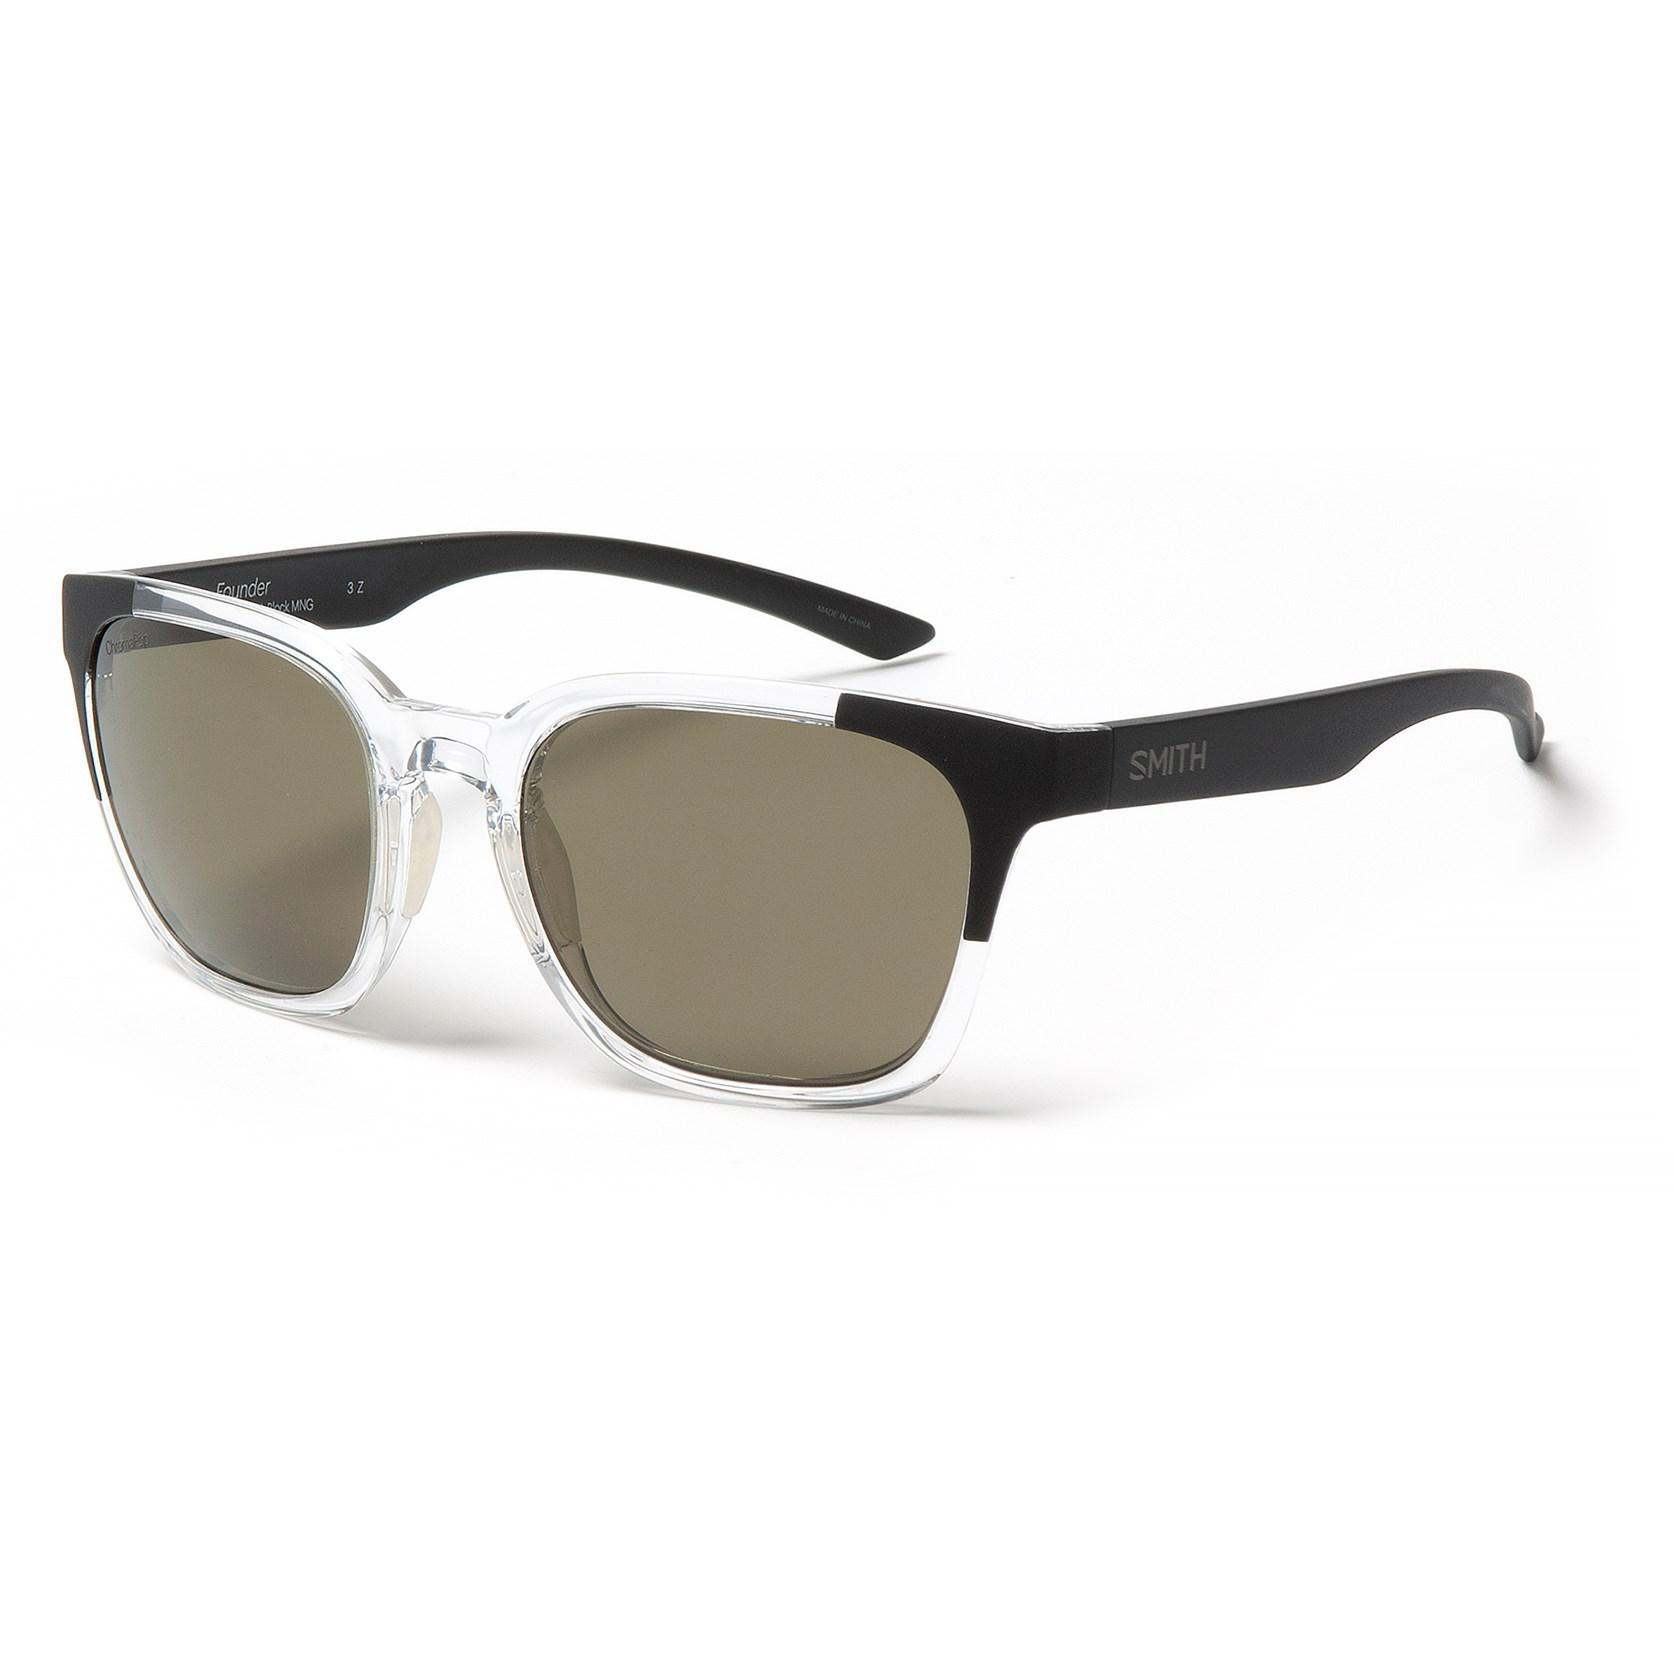 0090536a54f Lyst - Smith Optics Founder Sunglasses